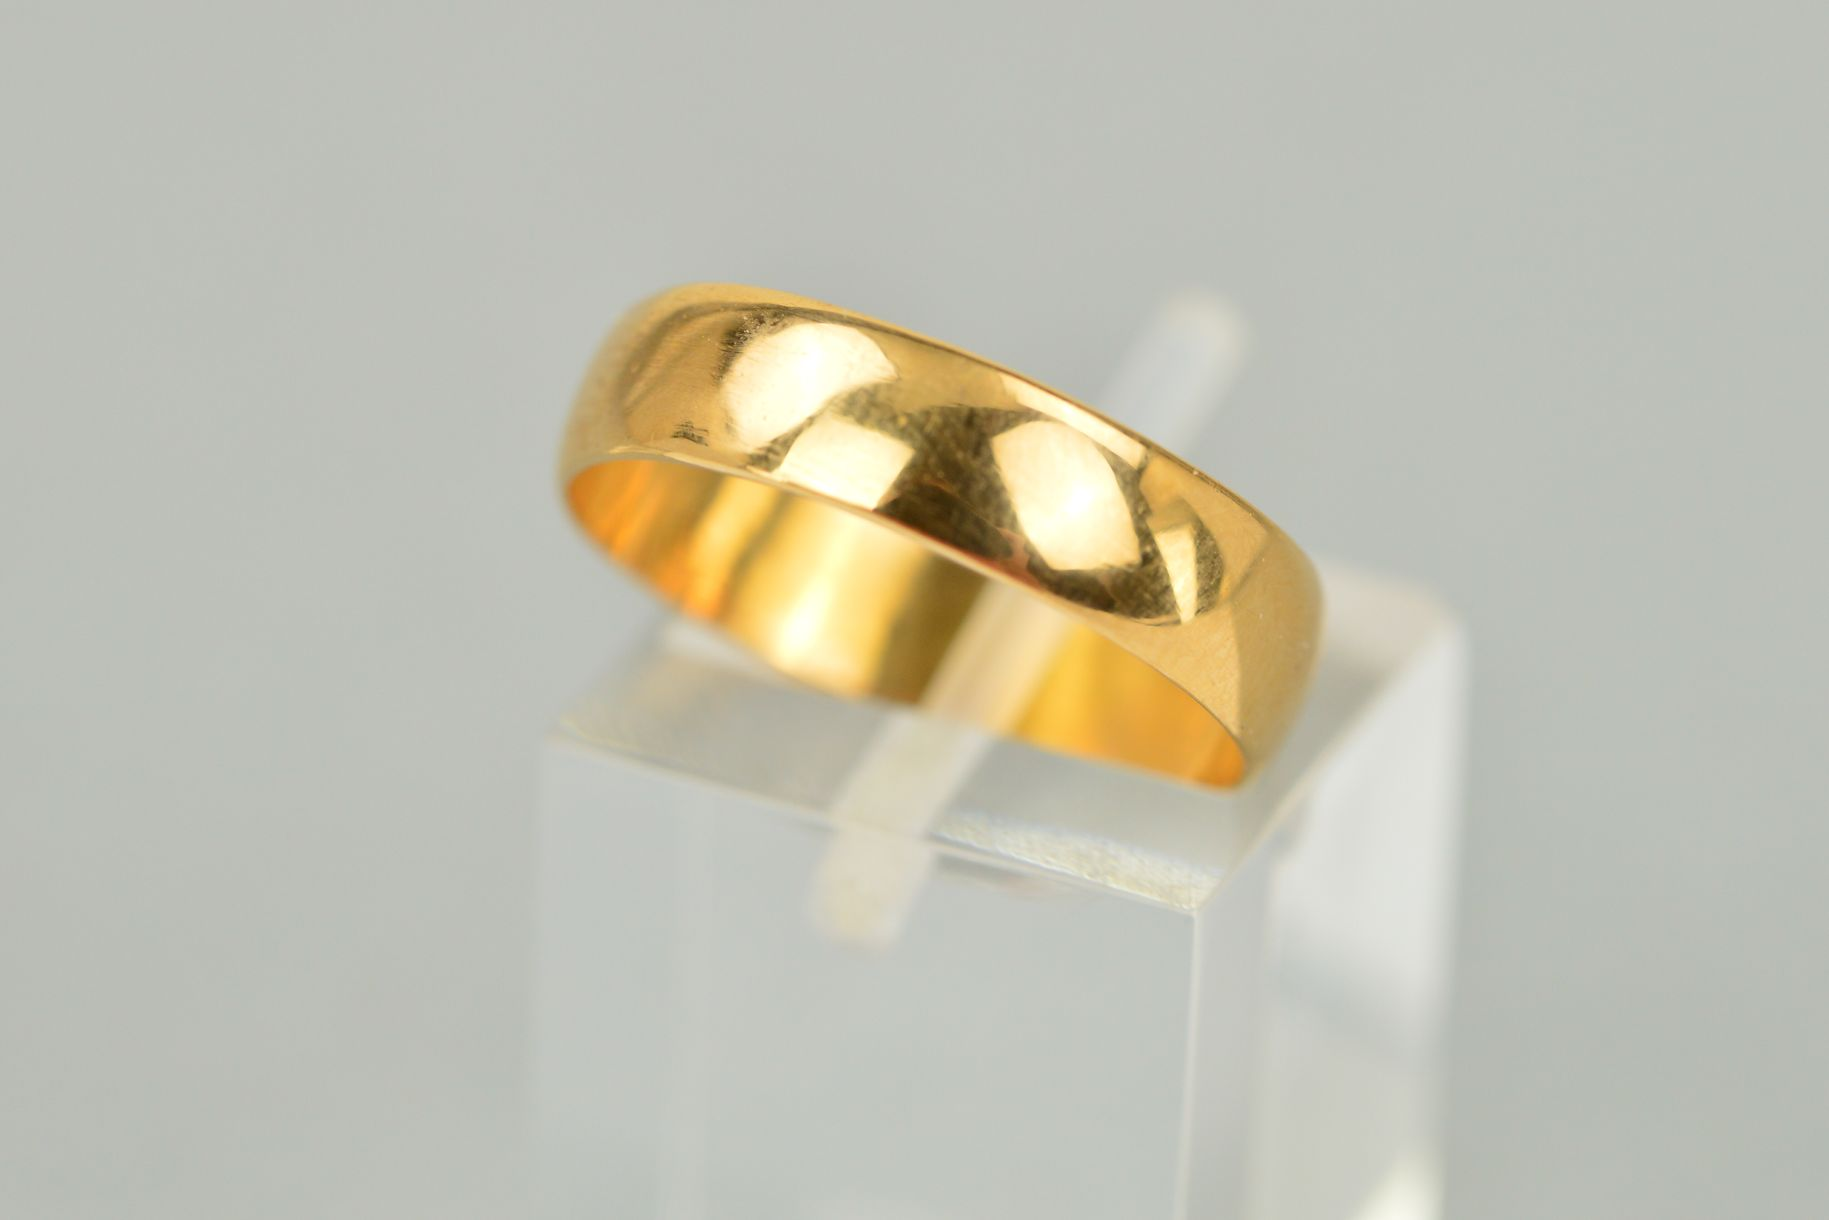 Lot 39 - AN EARLY 20TH CENTURY 22CT GOLD BAND RING of plain design with 22ct hallmark for Birmingham 1916,